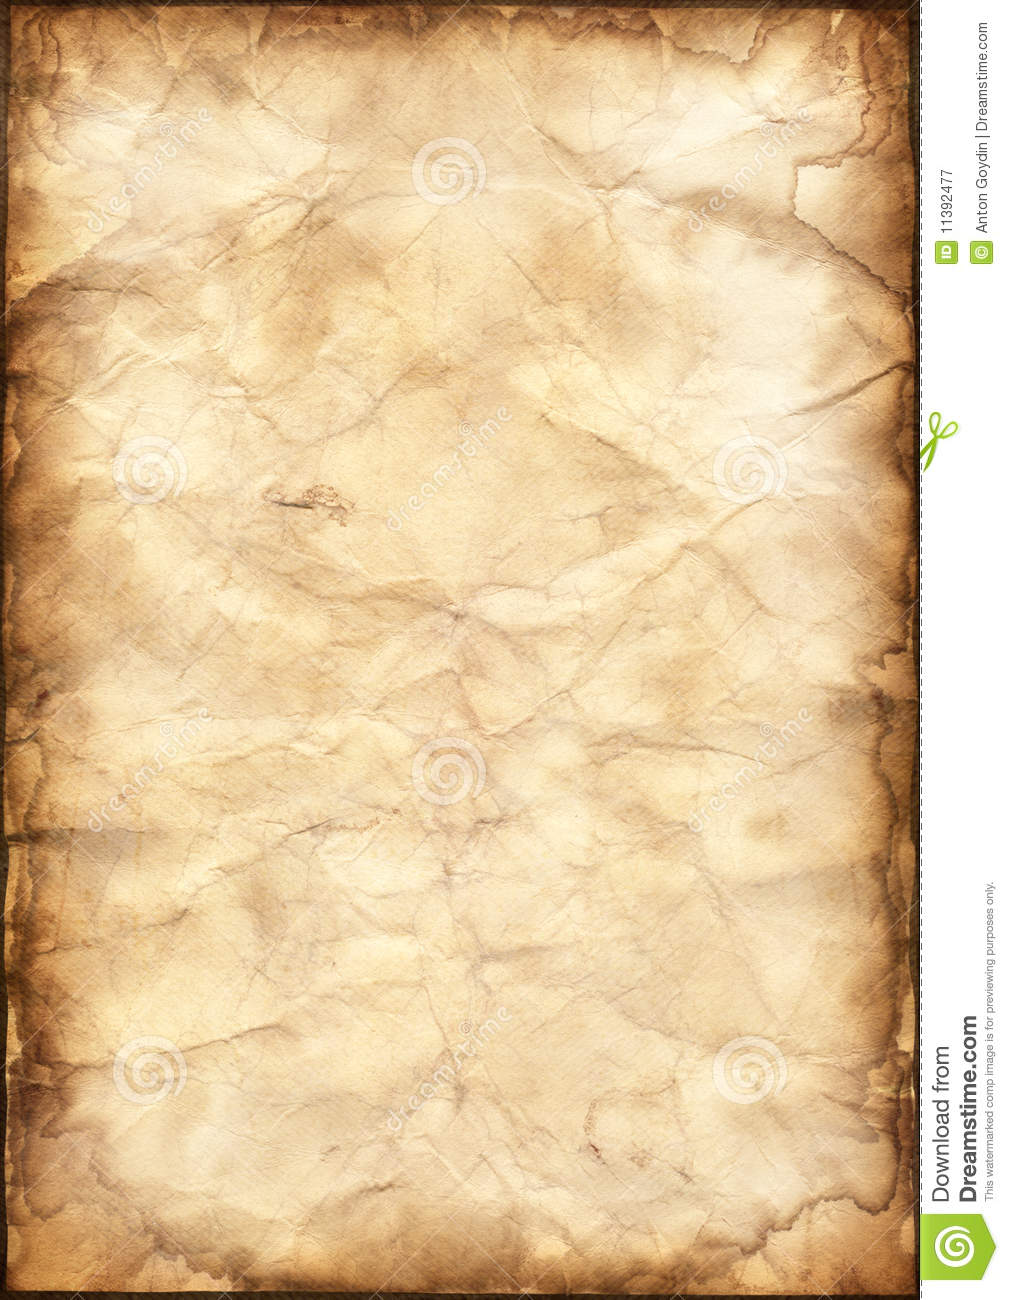 Parchment Paper Background Illustration 11392477